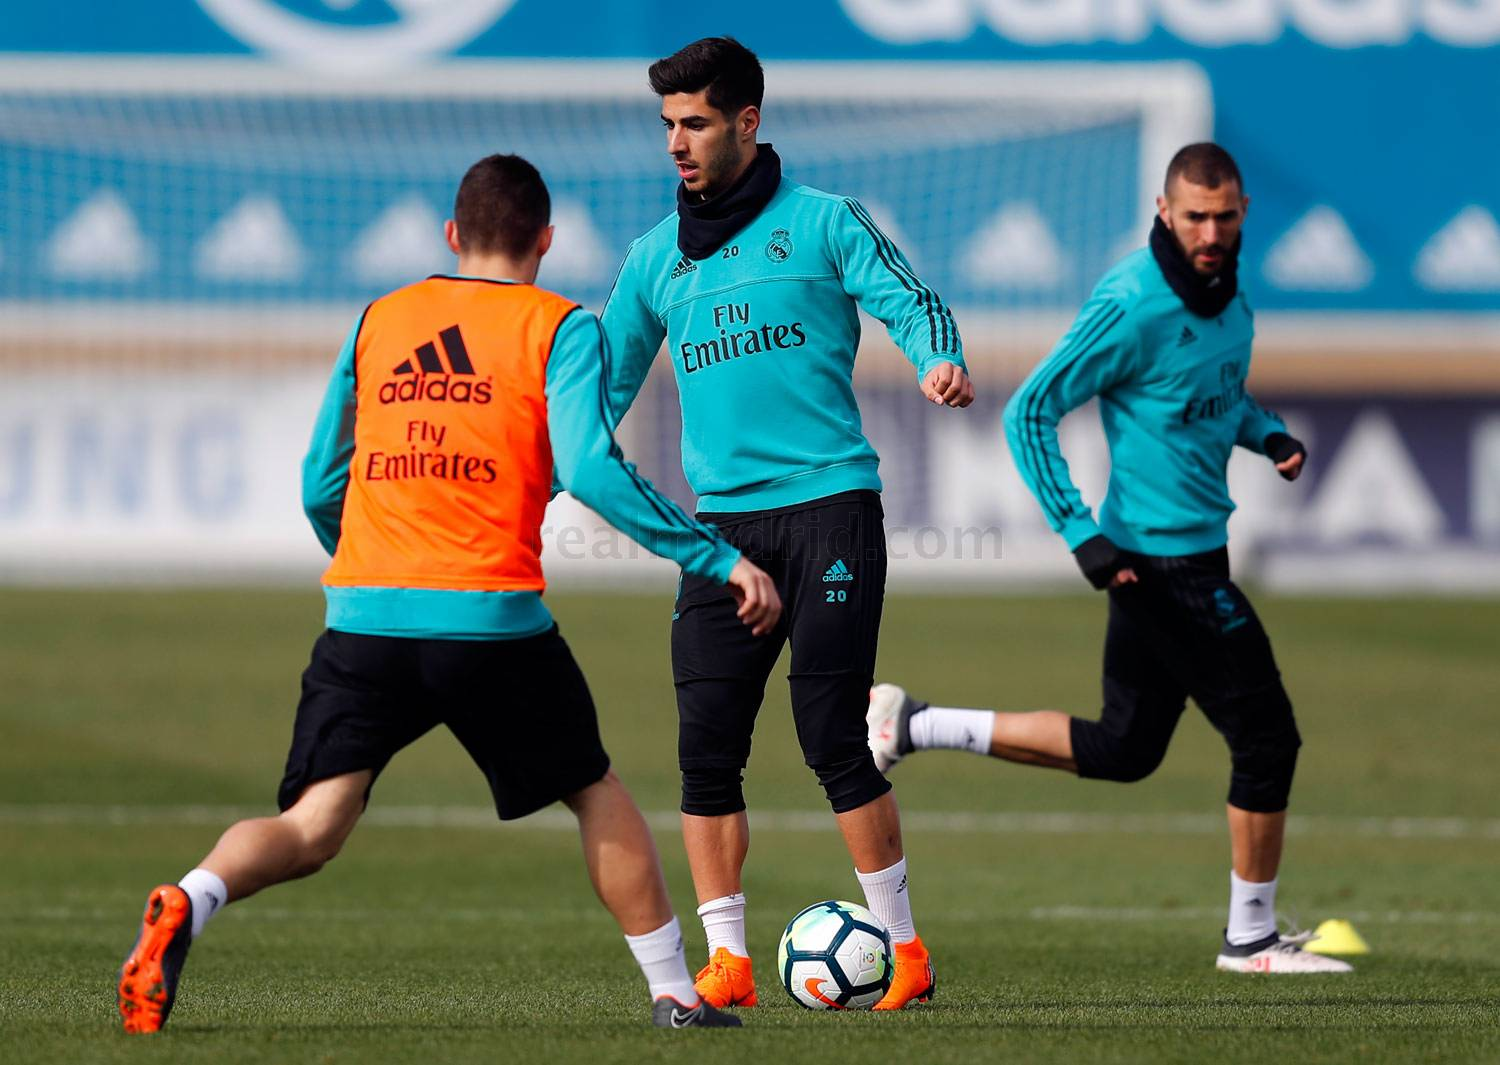 Real Madrid - Entrenamiento del Real Madrid - 20-02-2018